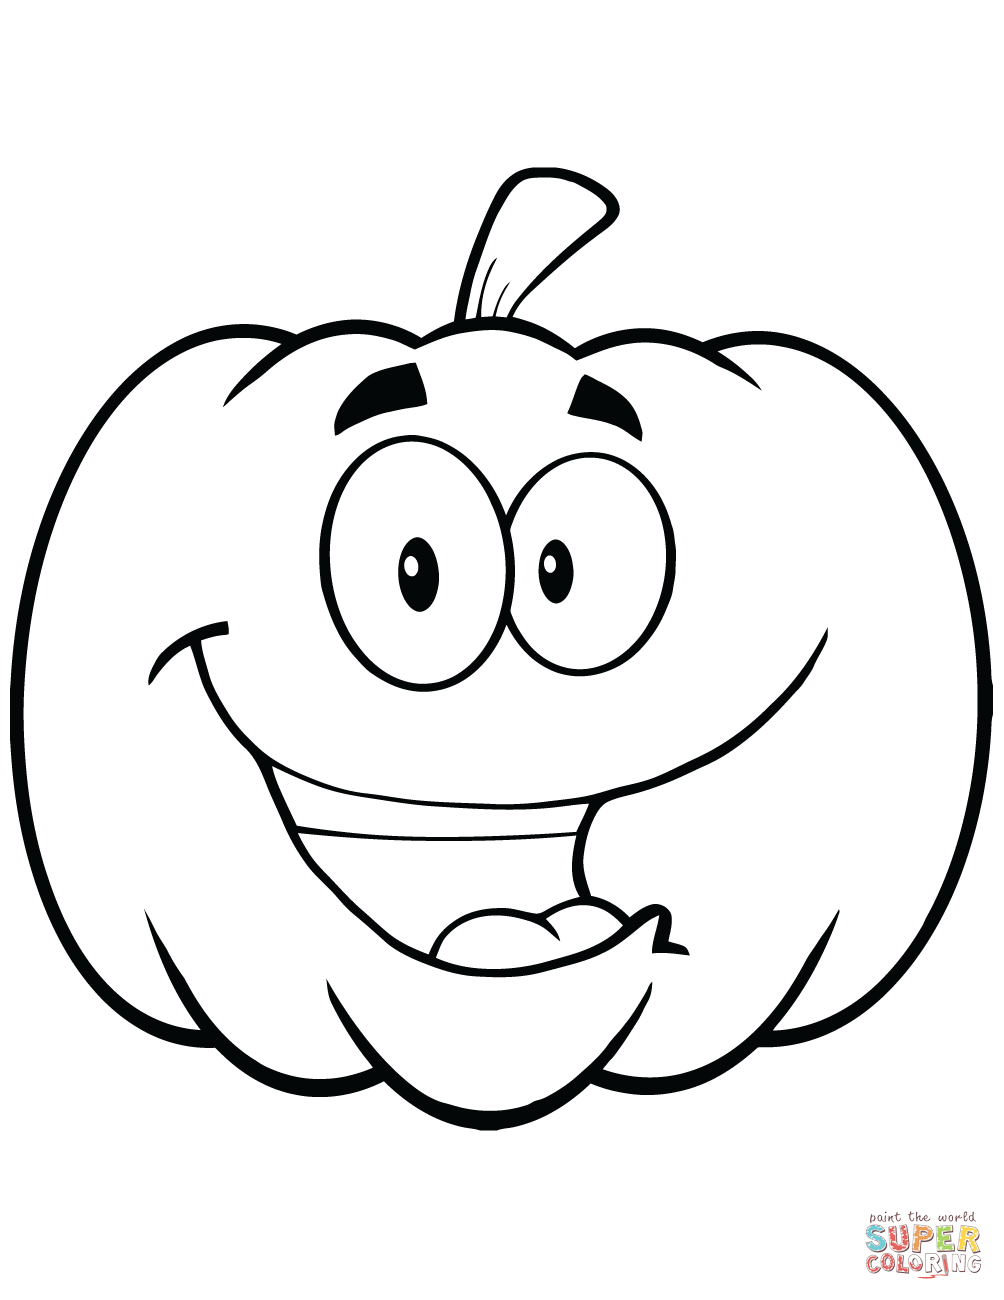 Cartoon Coloring Pages Pdf at GetDrawings.com | Free for personal ...